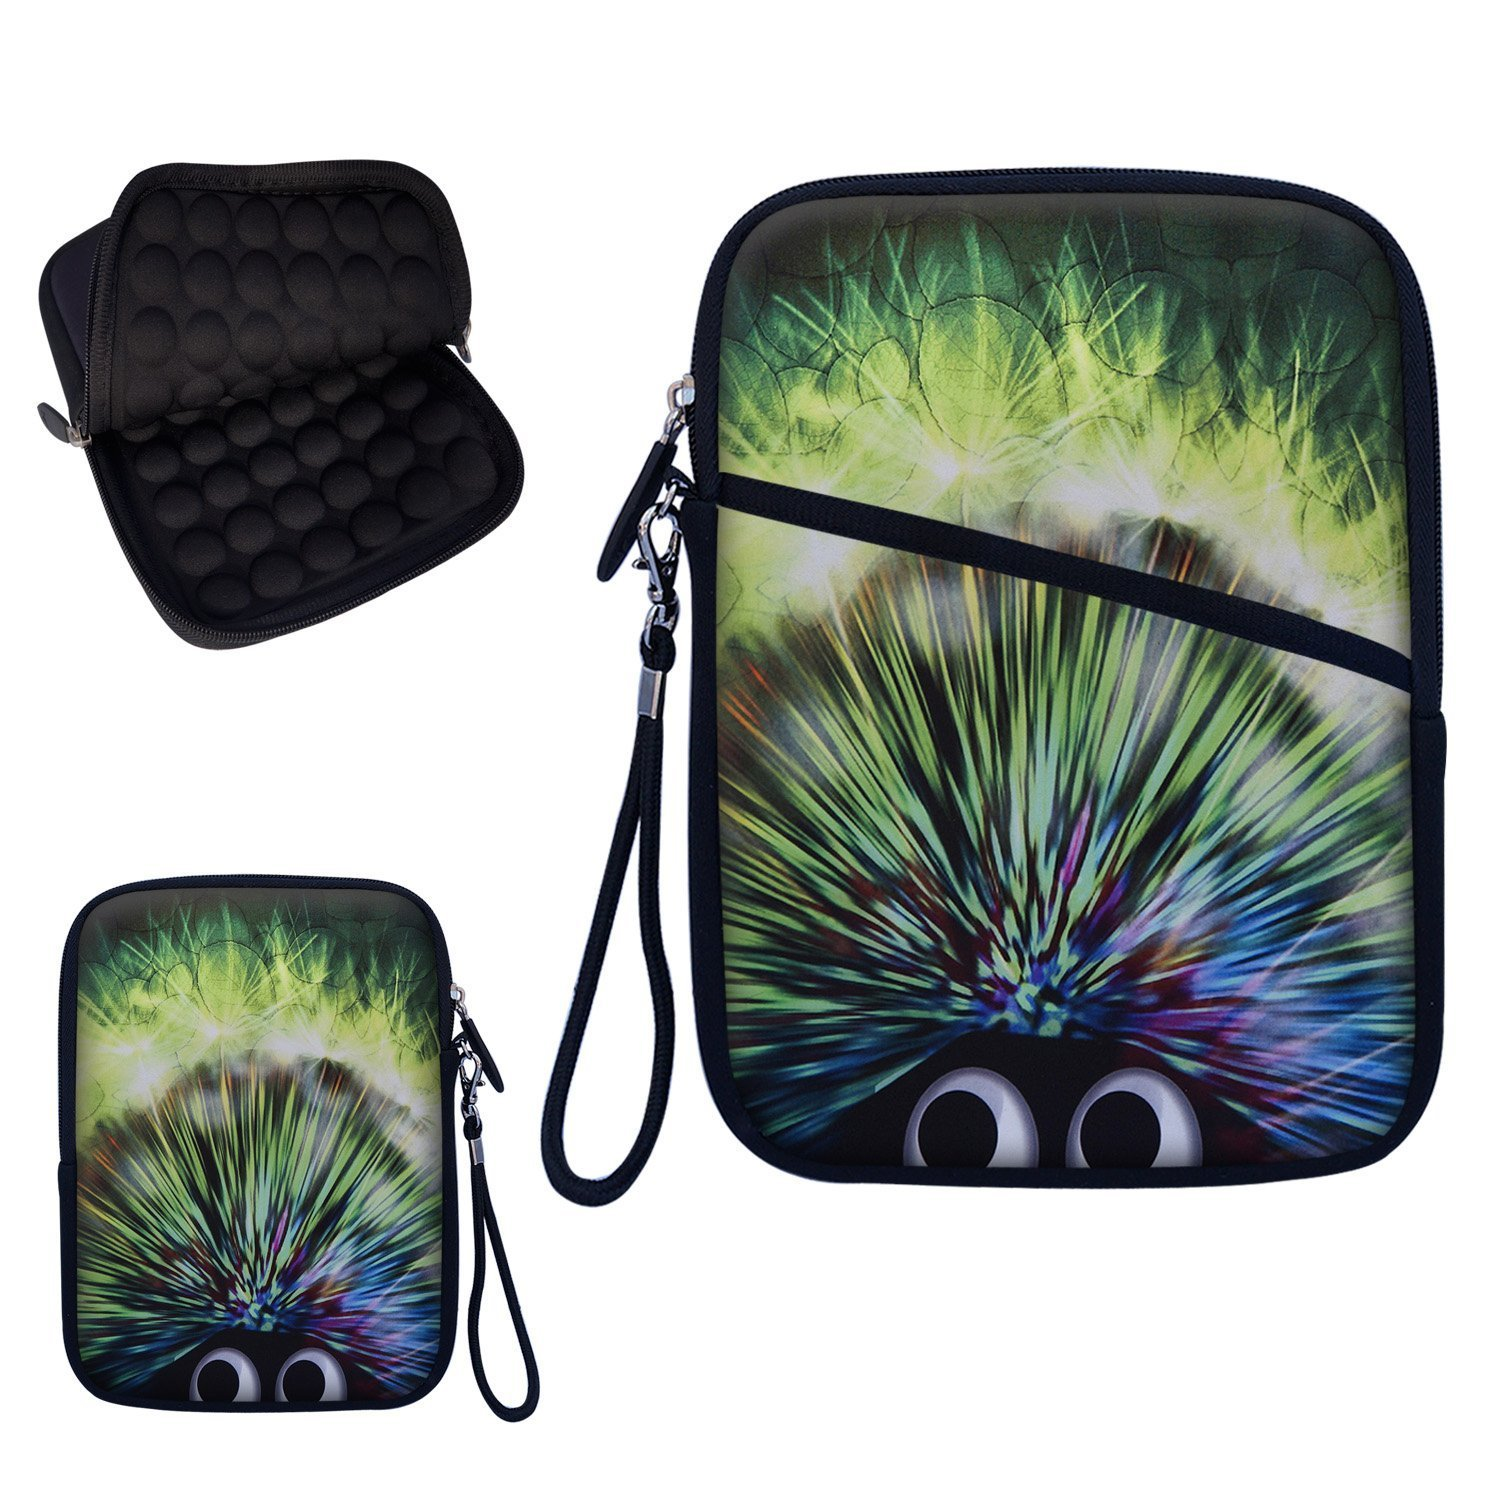 """Neoprene Super Padded Bubble Sleeve Case Cover with Removable Carrying Handle Fits Apple iPad Mini / Amazon Kindle Fire HD / Google Nexus 7 / Samsung Galaxy / Asus / Acer / Archos and Similar Size 7"""" Tablet - Cut Hedgehog Design"""